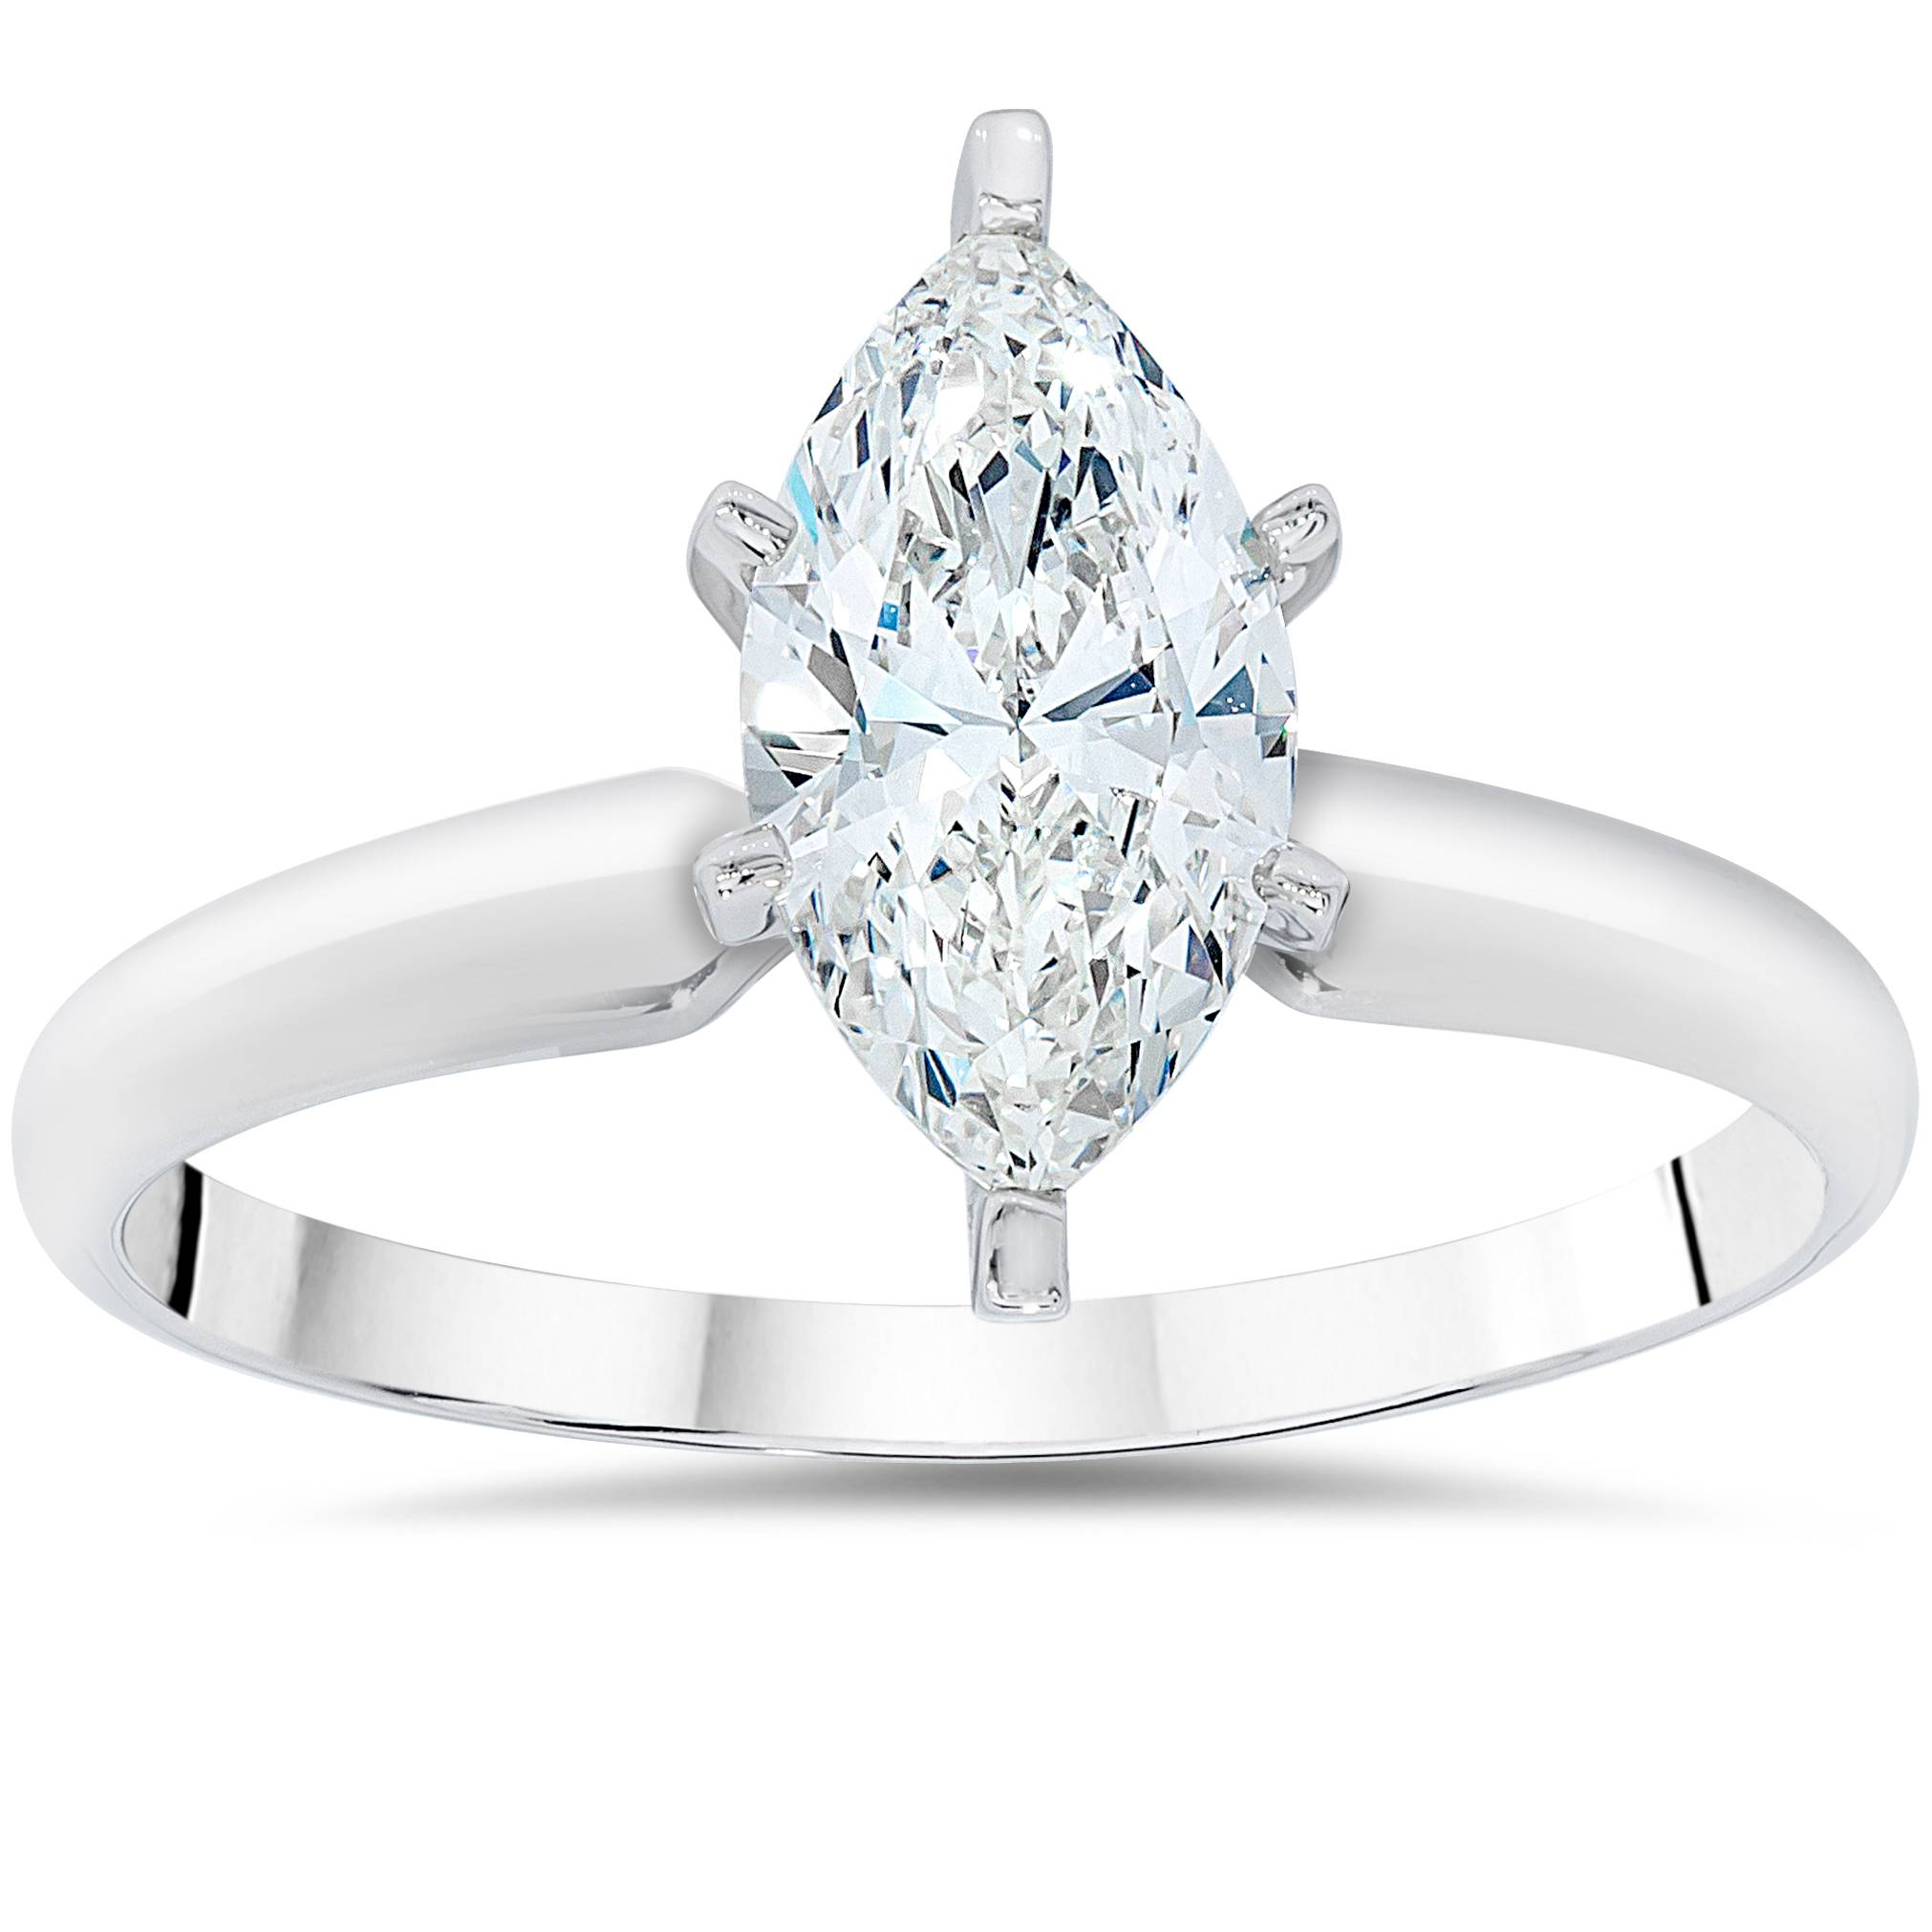 Marquise Ring Bands: 1ct Solitaire Marquise Enhanced Diamond Engagement Ring